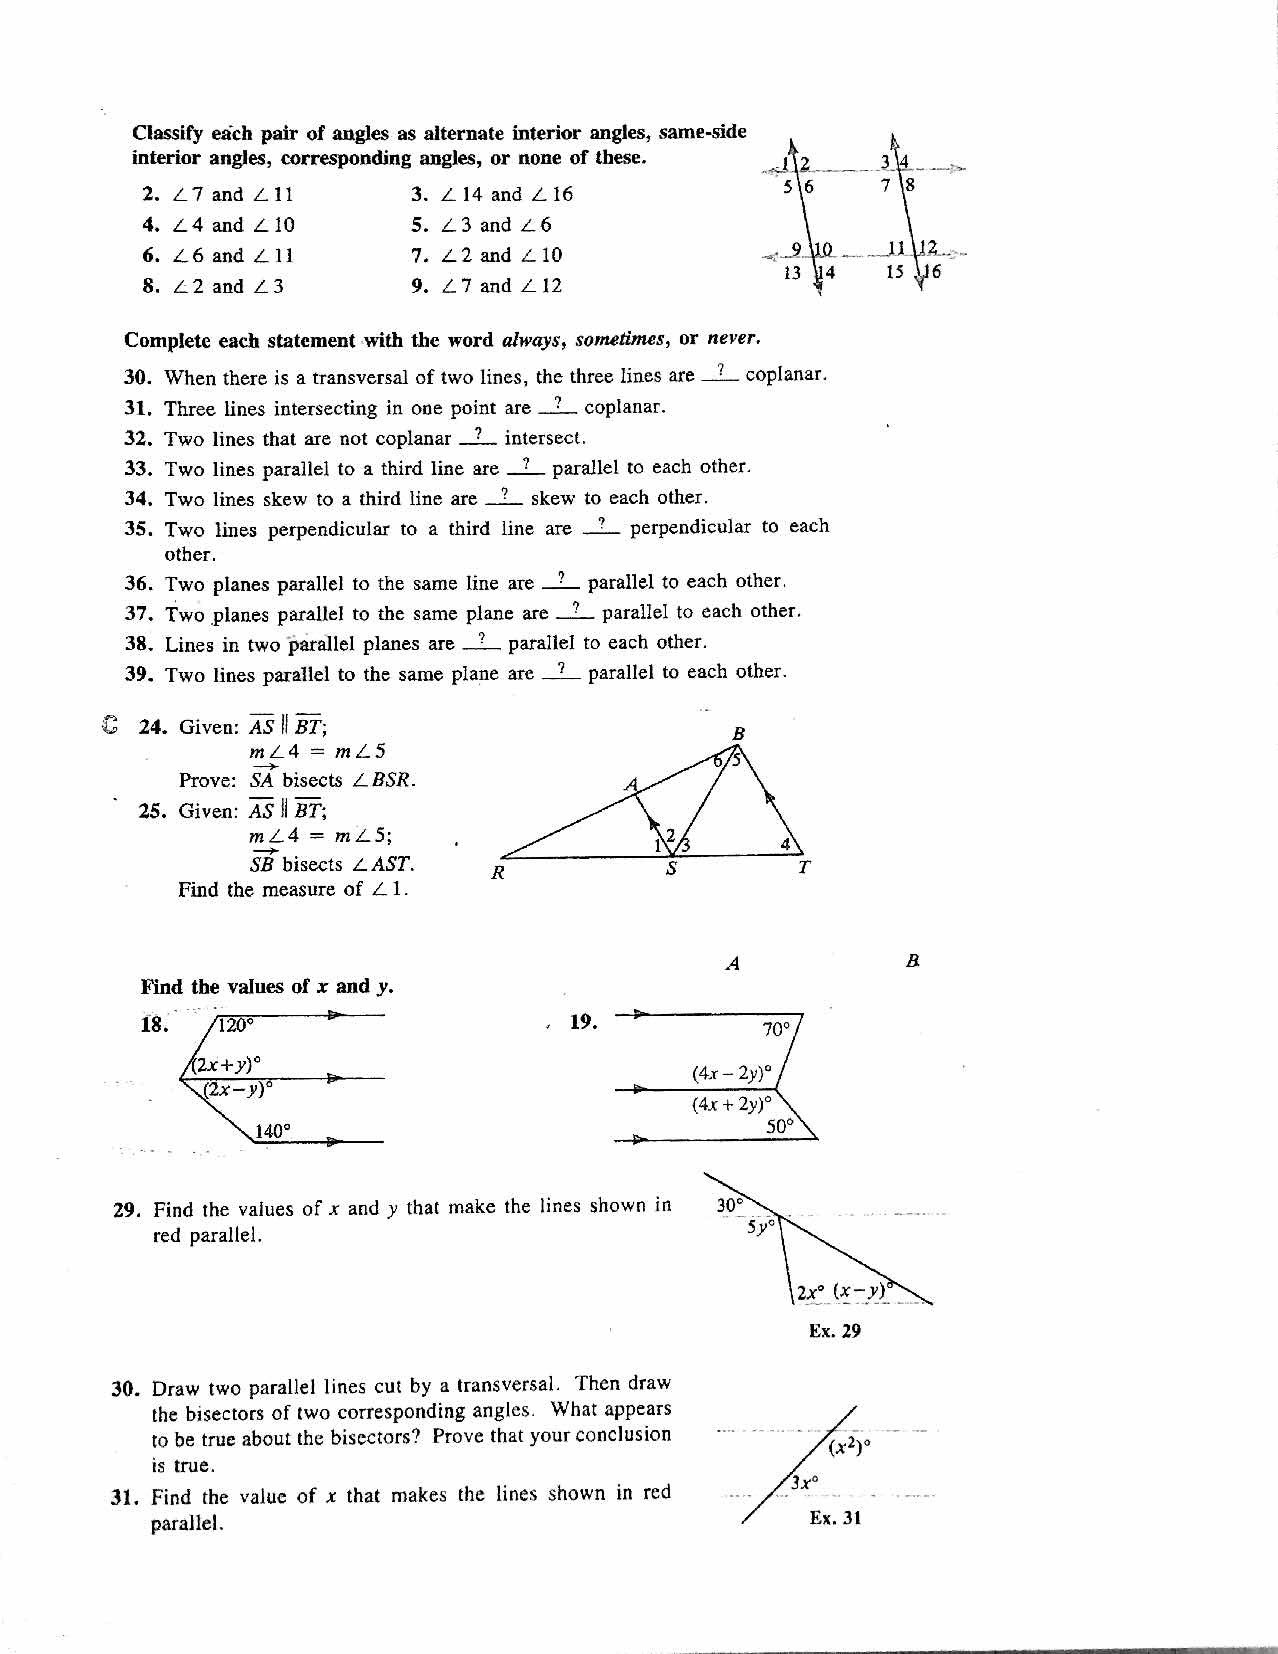 Geometry archive mr nockles math classroom part 2 do 1819 29 31 ccuart Choice Image